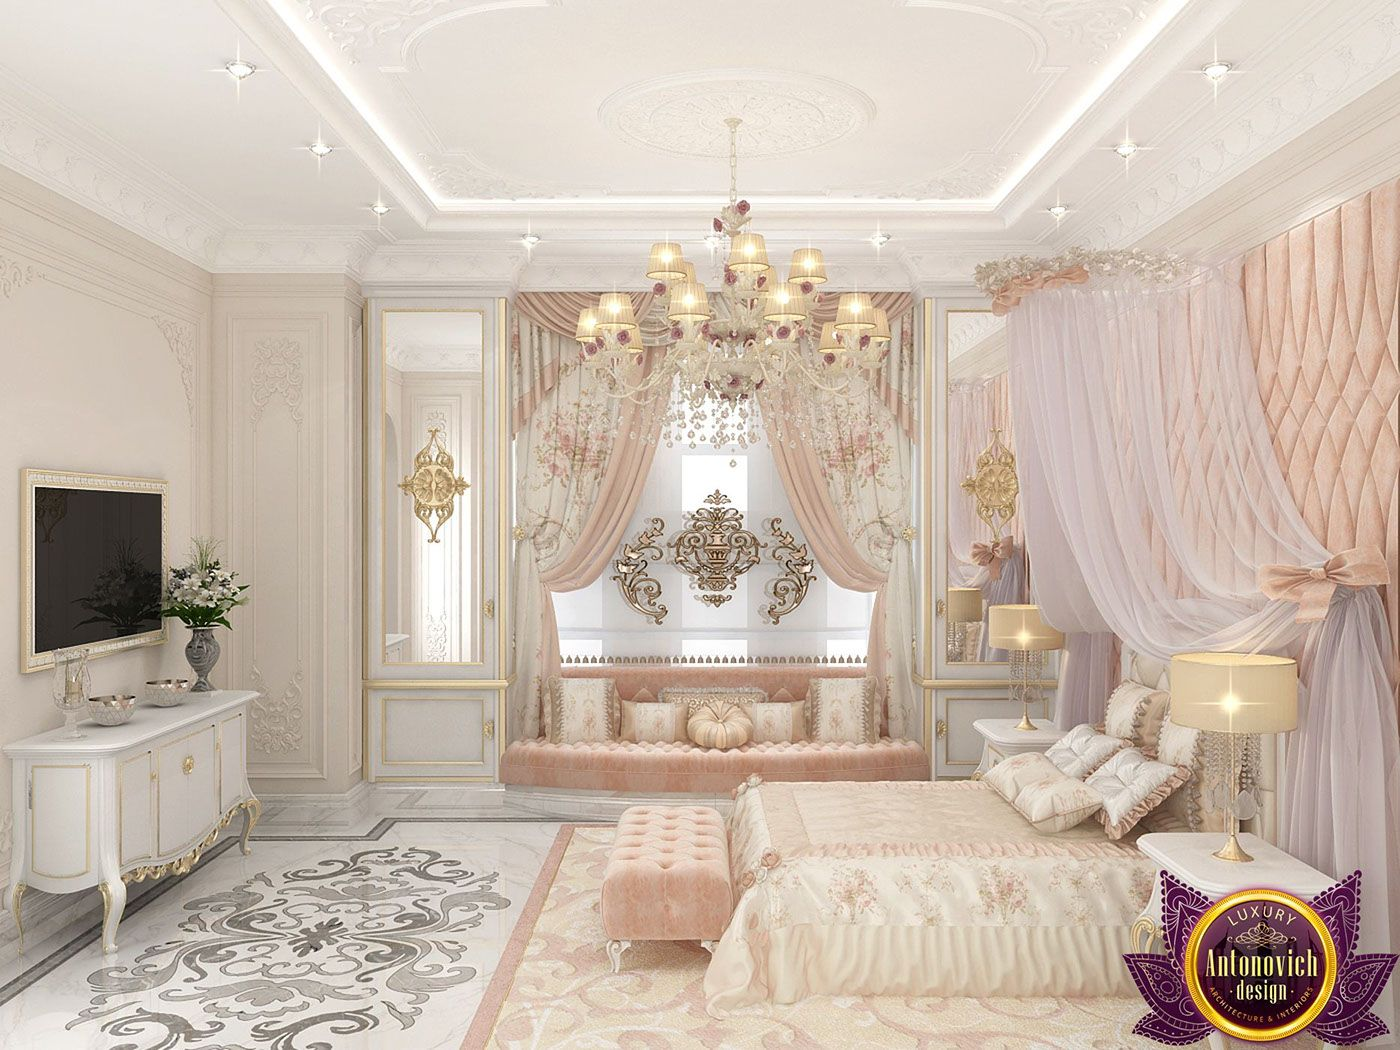 Best Kids Room Design For Girl By Katrina Antonovich Reflects The Tenderness And Infinite Love That 400 x 300